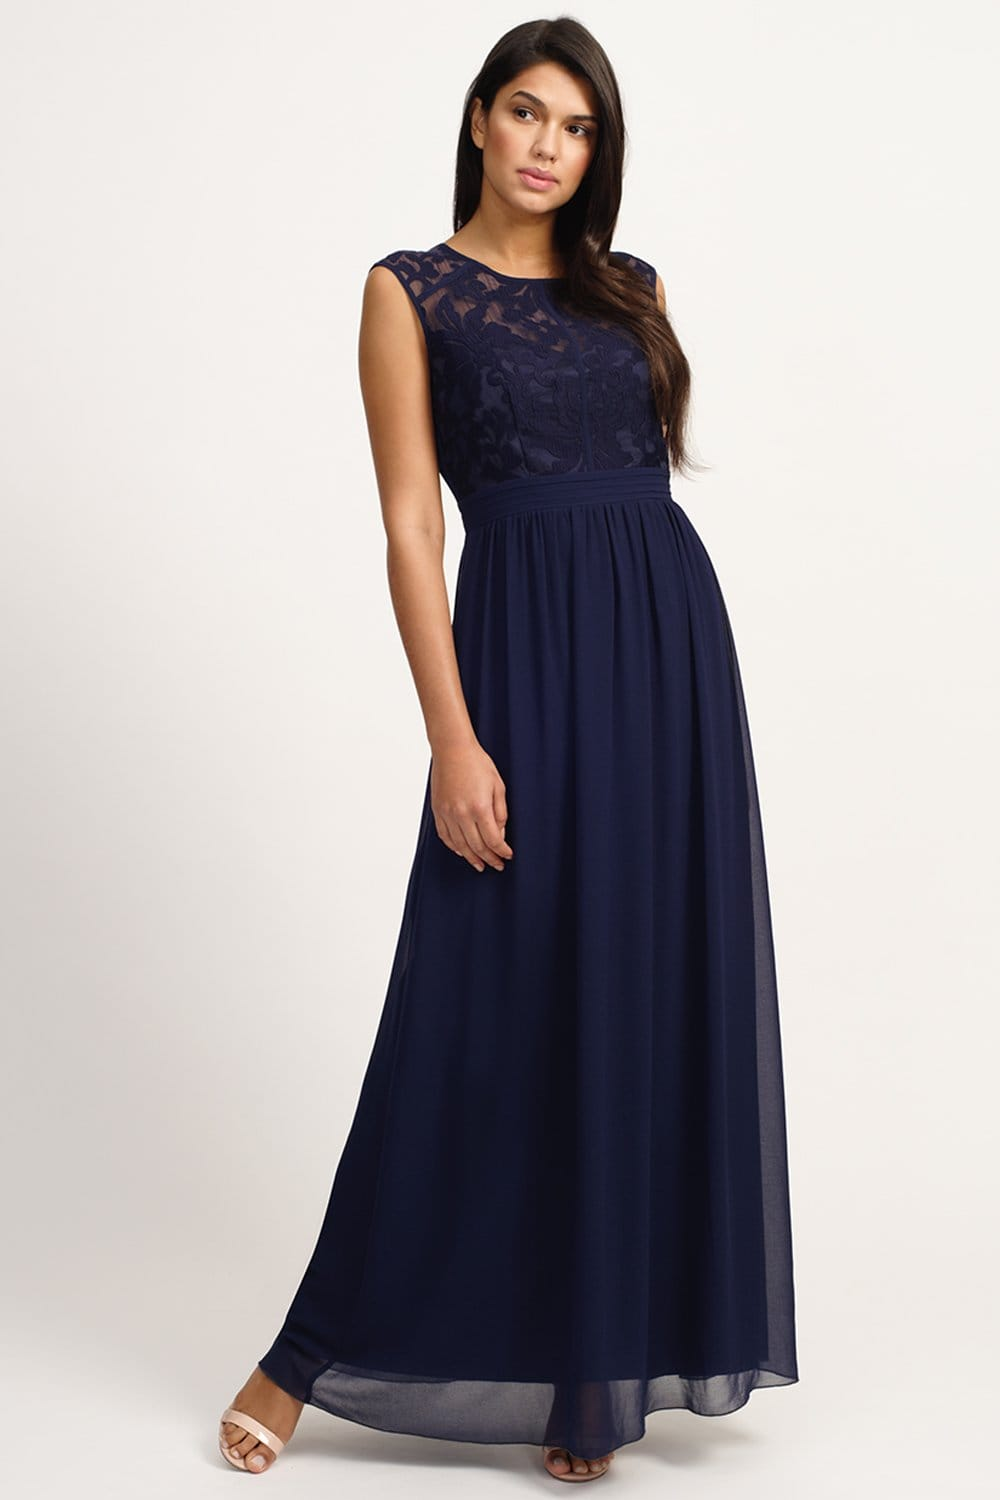 Little Mistress Navy Floral Flock Maxi Dress  Little Mistress from Little Mistress UK